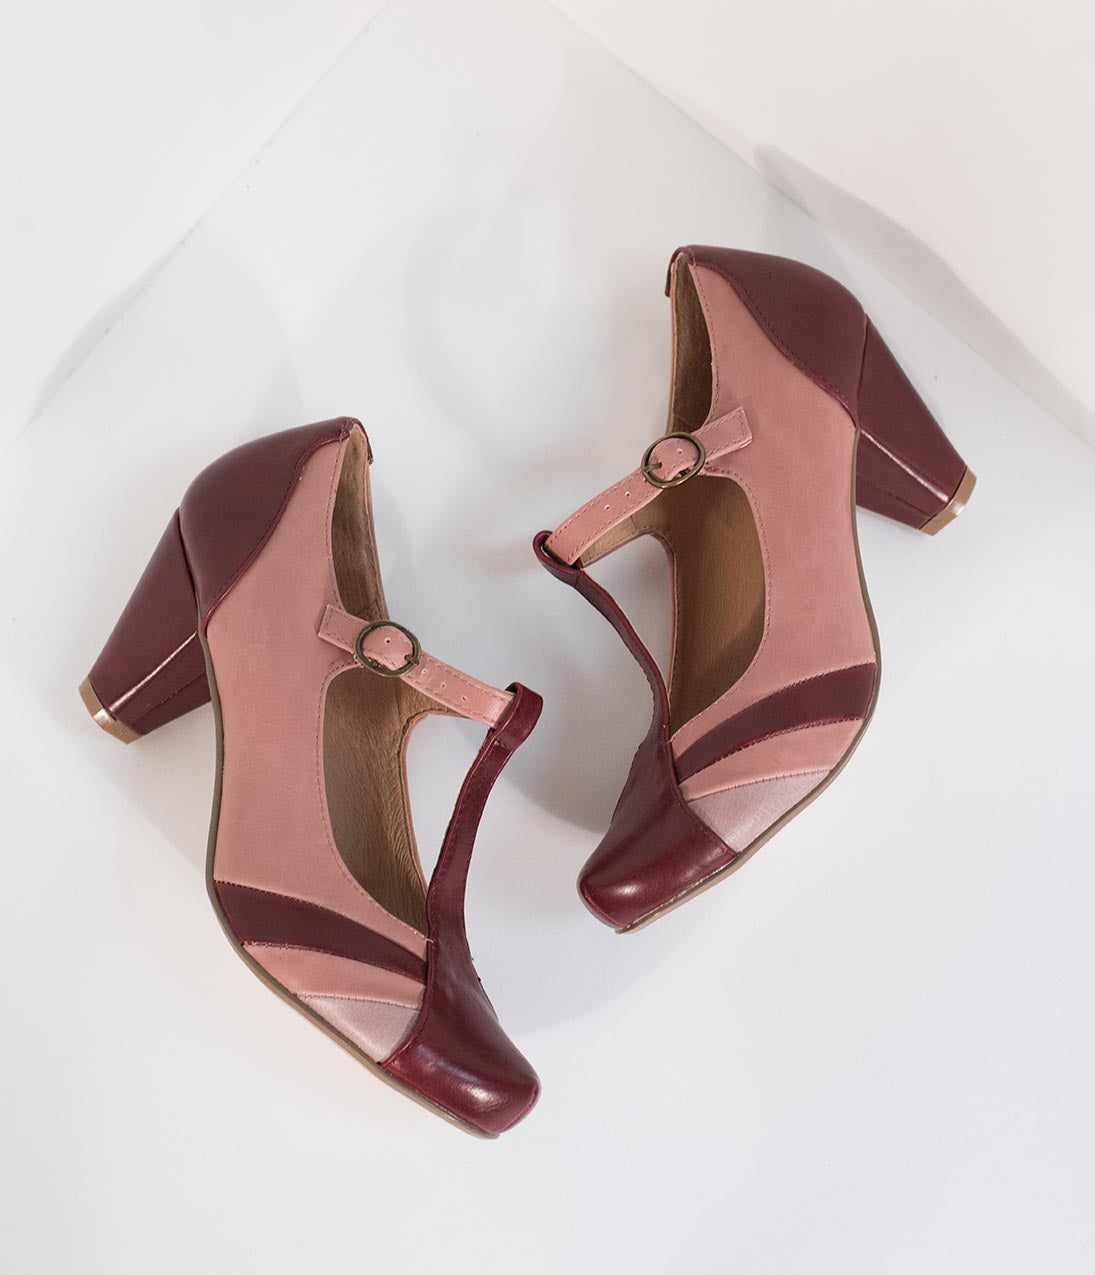 60s Shoes, Boots | 70s Shoes, Platforms, Boots Chelsea Crew Burgundy  Pink Leatherette T-Strap Monet Heels $74.00 AT vintagedancer.com